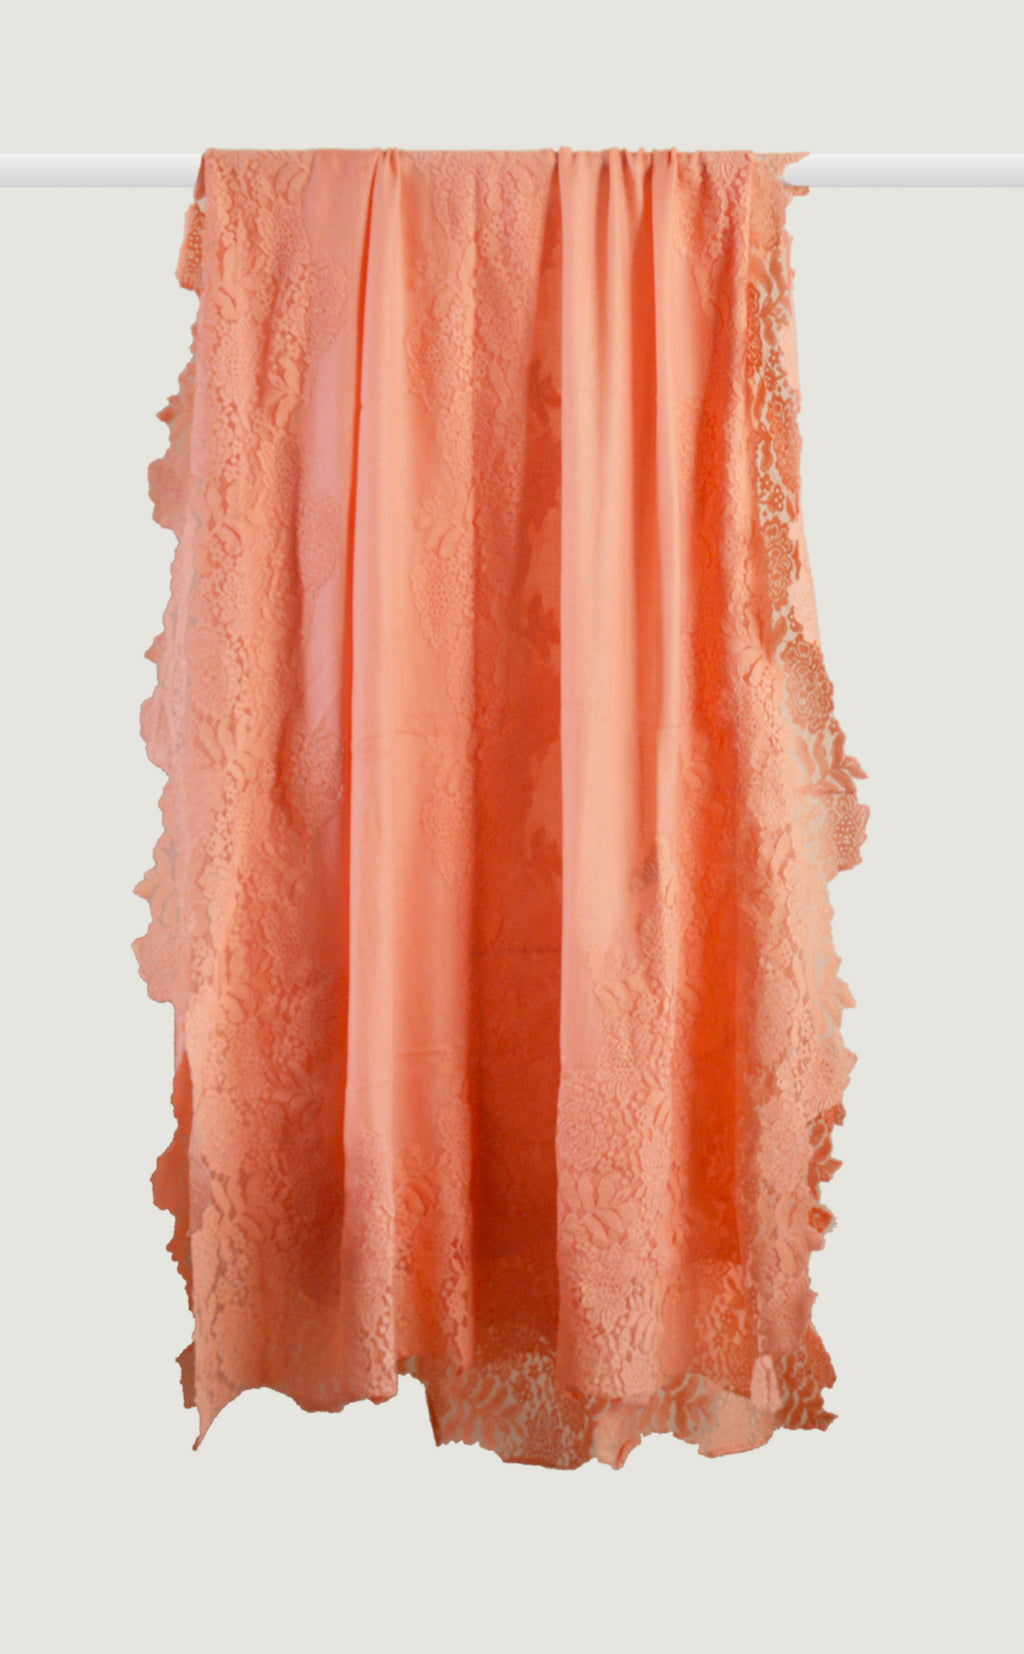 Peach Chantilly Stole